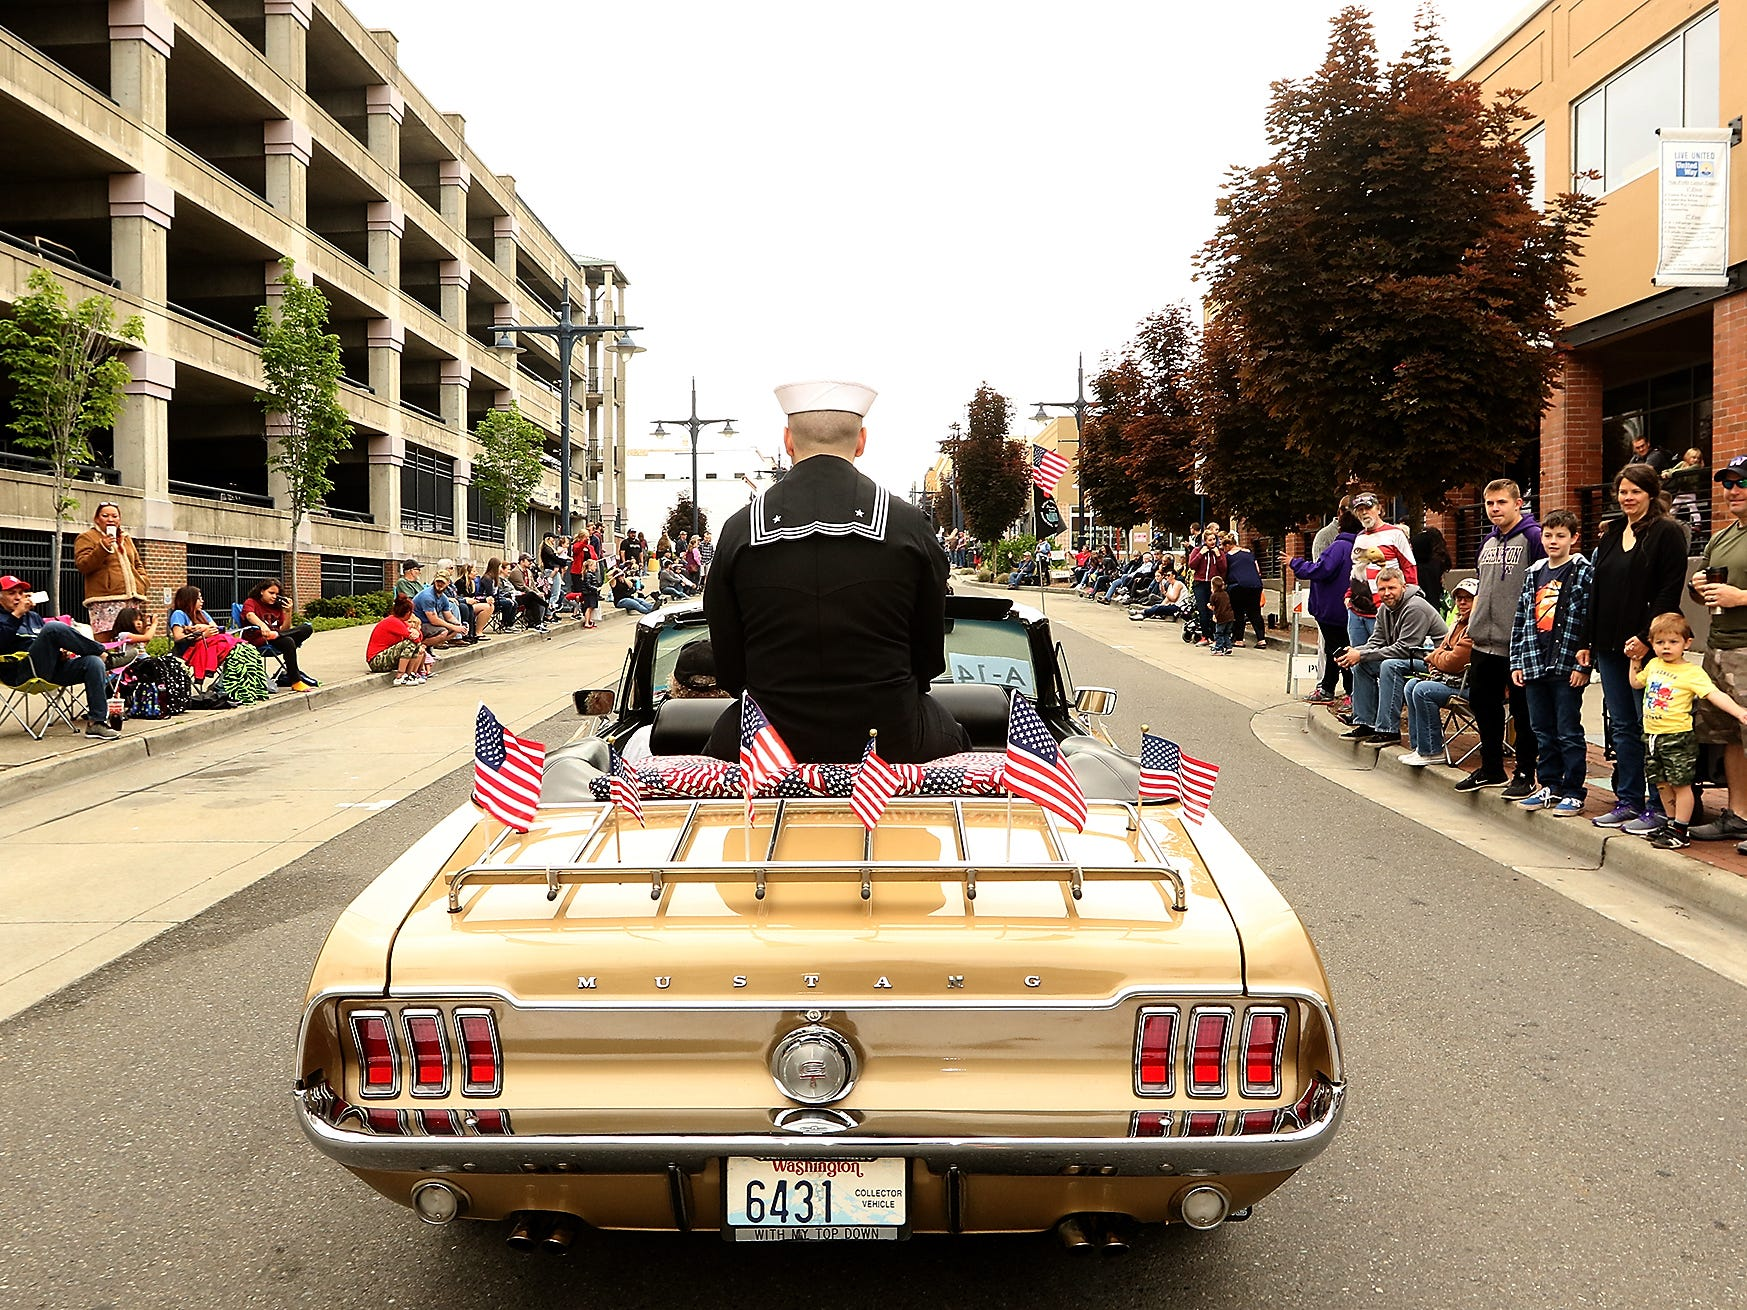 The Armed Forces Day Parade travels down 4th Street in downtown Bremerton, Washington on Saturday, May 19, 2018.